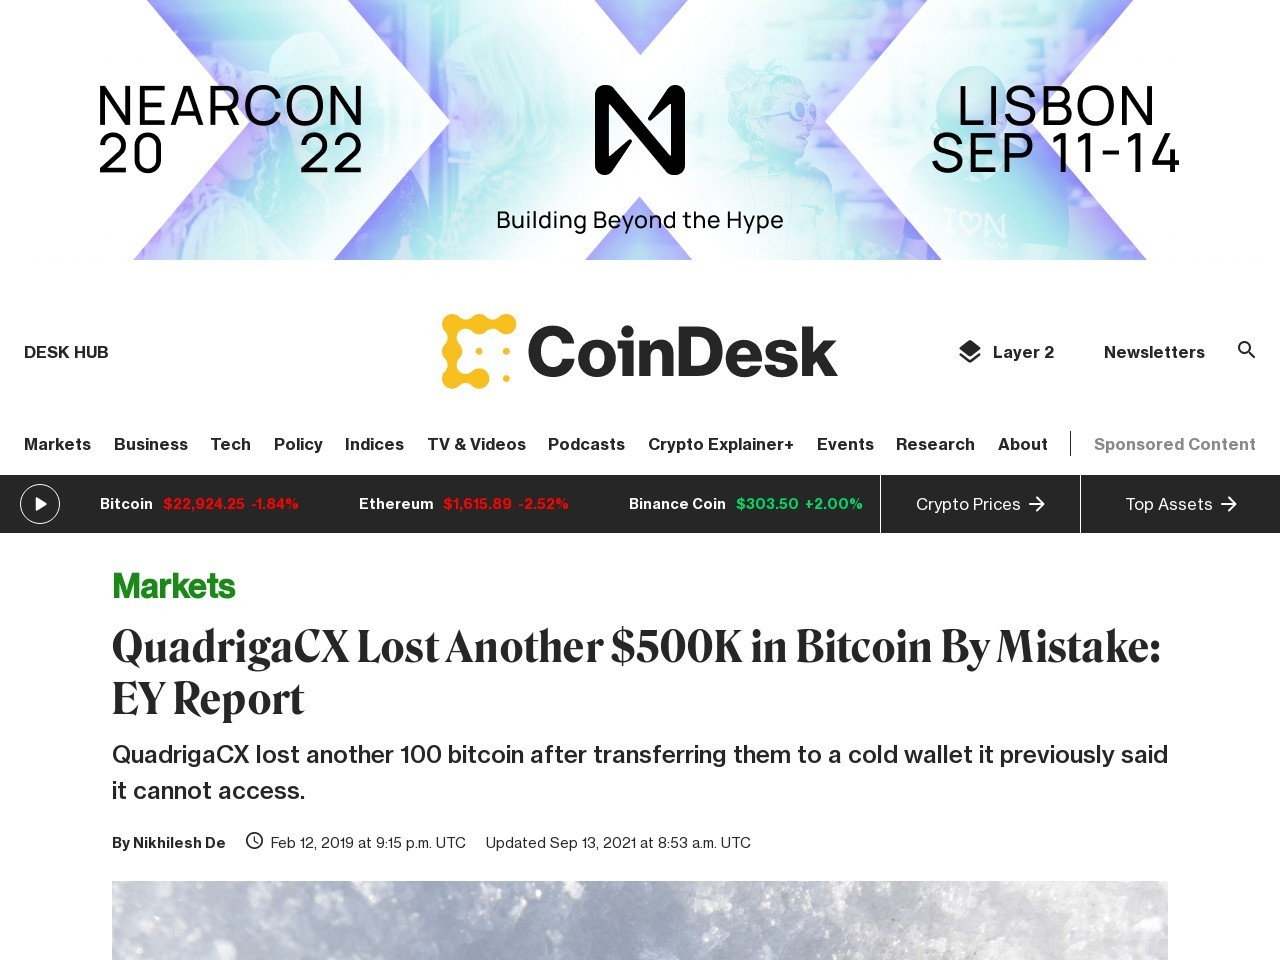 QuadrigaCX Lost Another $500K in Bitcoin By Mistake: EY Report